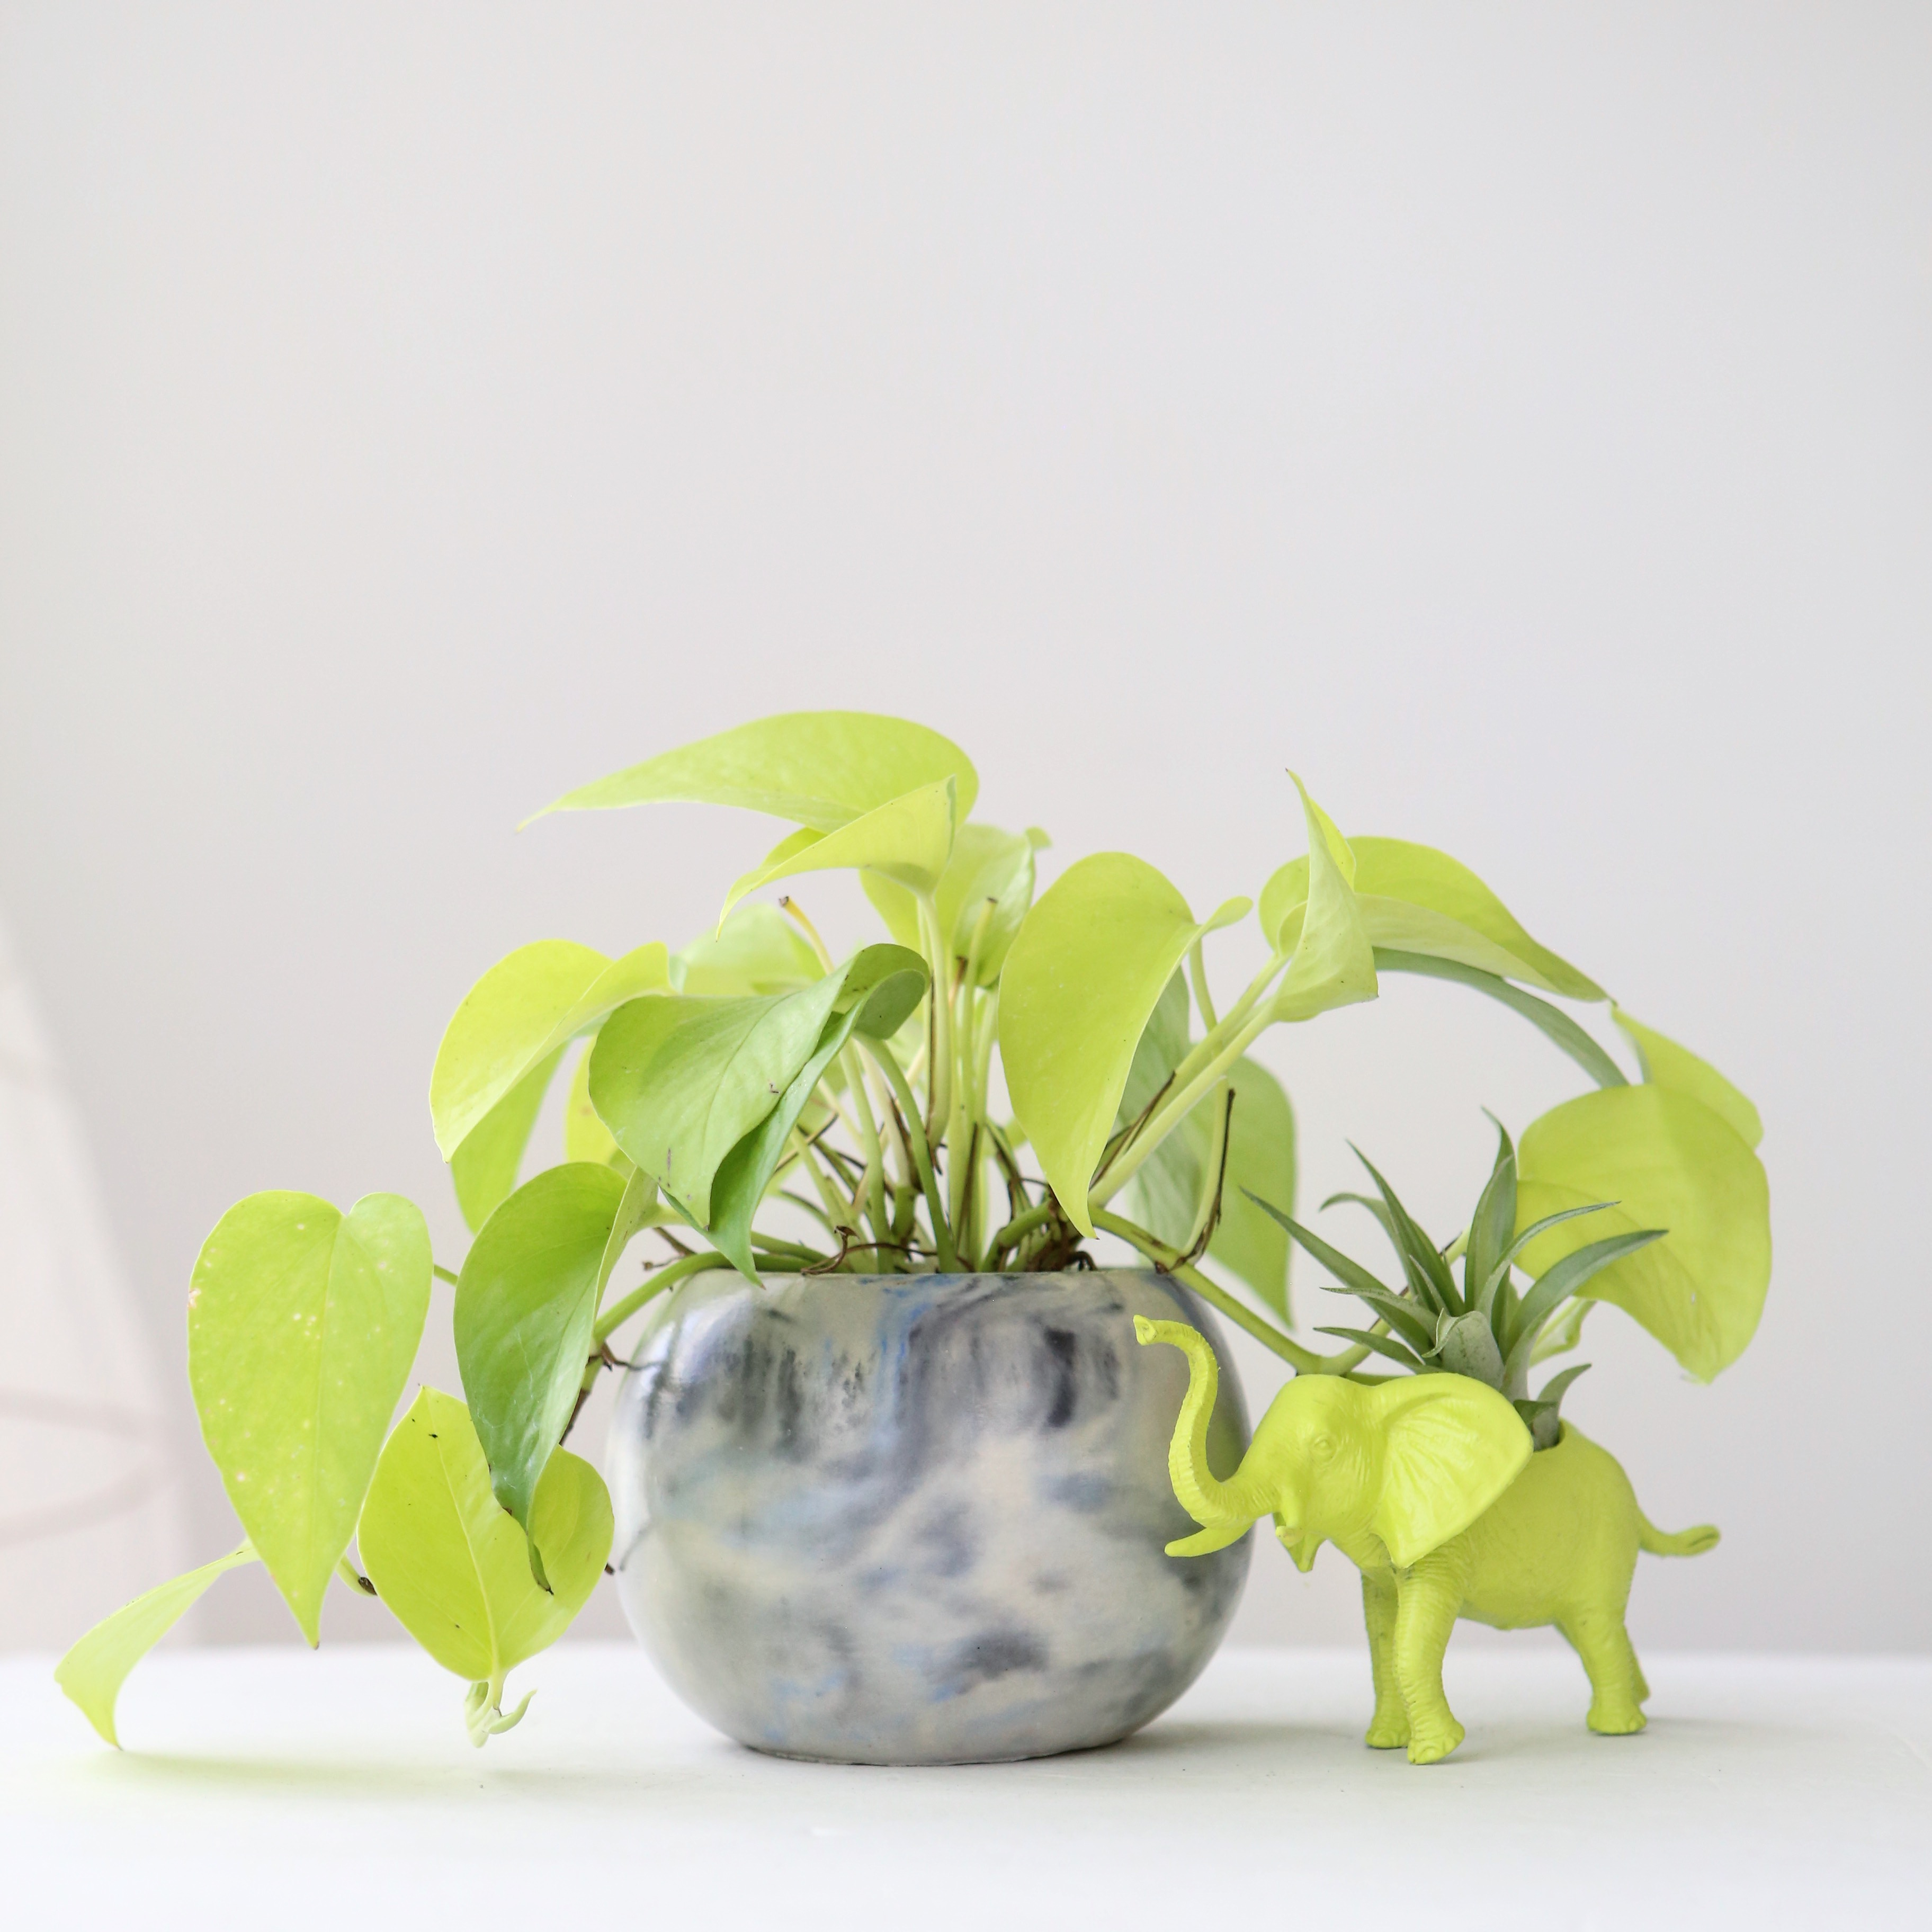 Neon pothos in Modern Plant Life marble concrete planter